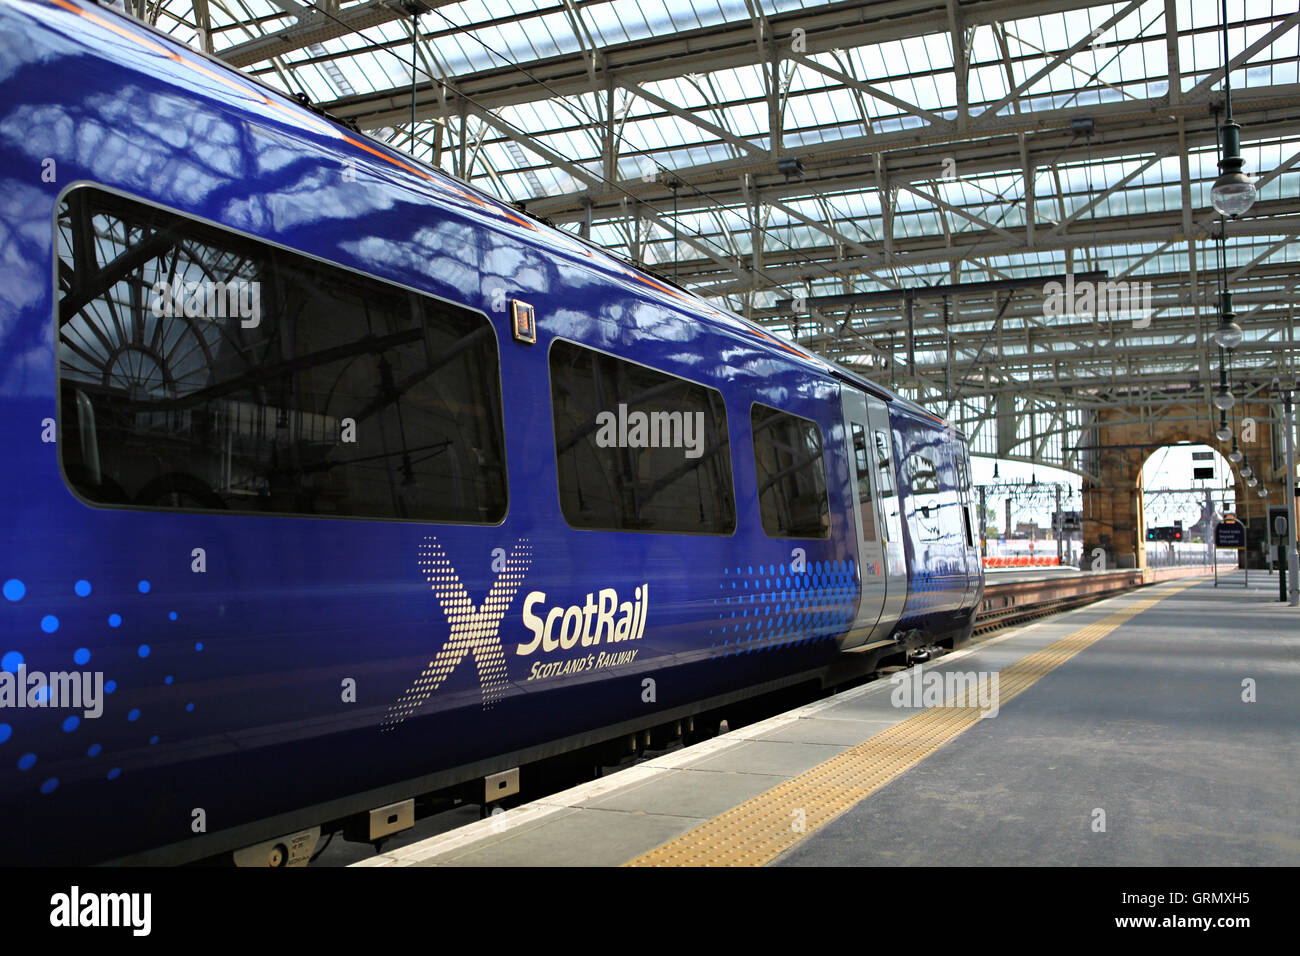 GLASGOW, SCOTLAND, UK - JULY 12, 2013: A ScotRail train at the platform at Queen Street station in Glasgow. - Stock Image